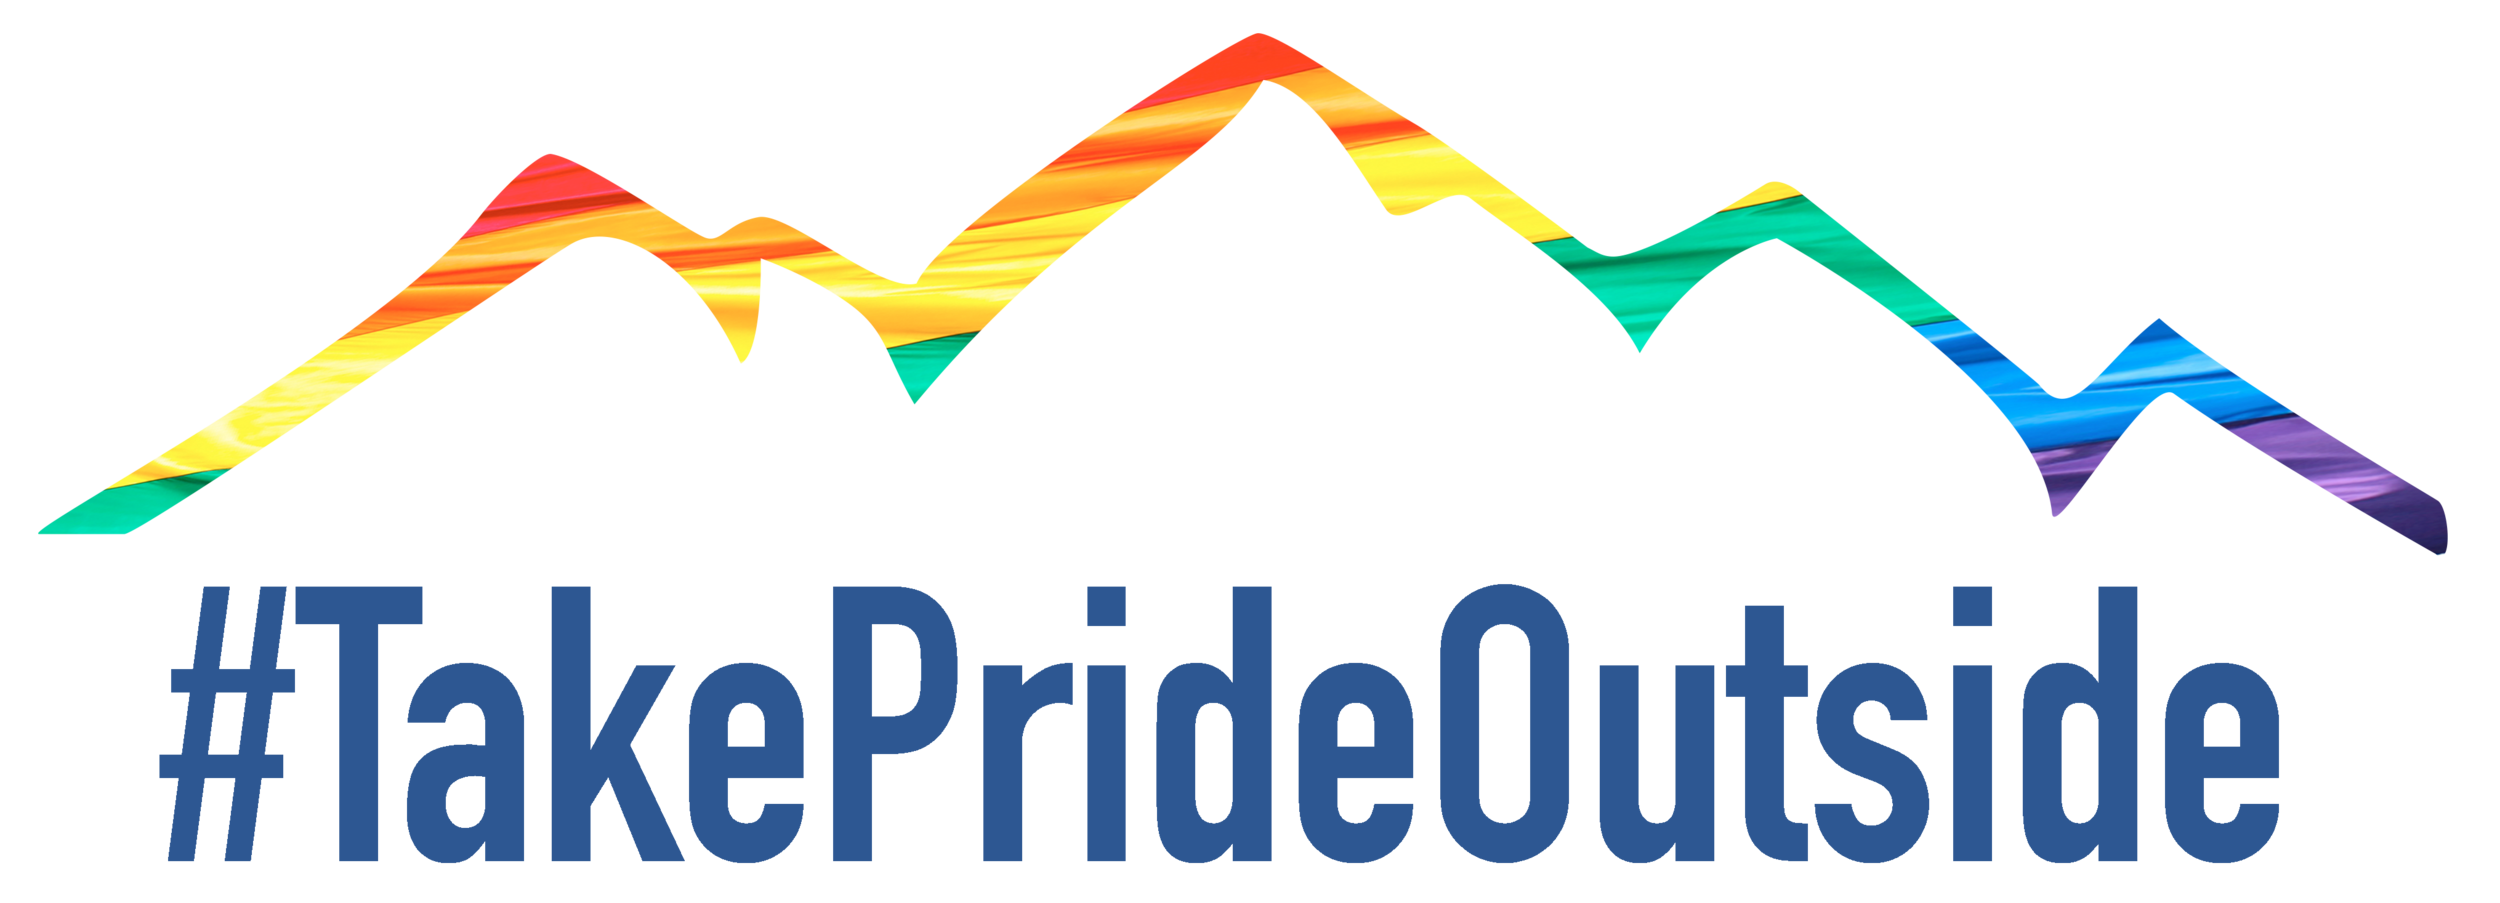 GOAT - Take Pride Outside logo